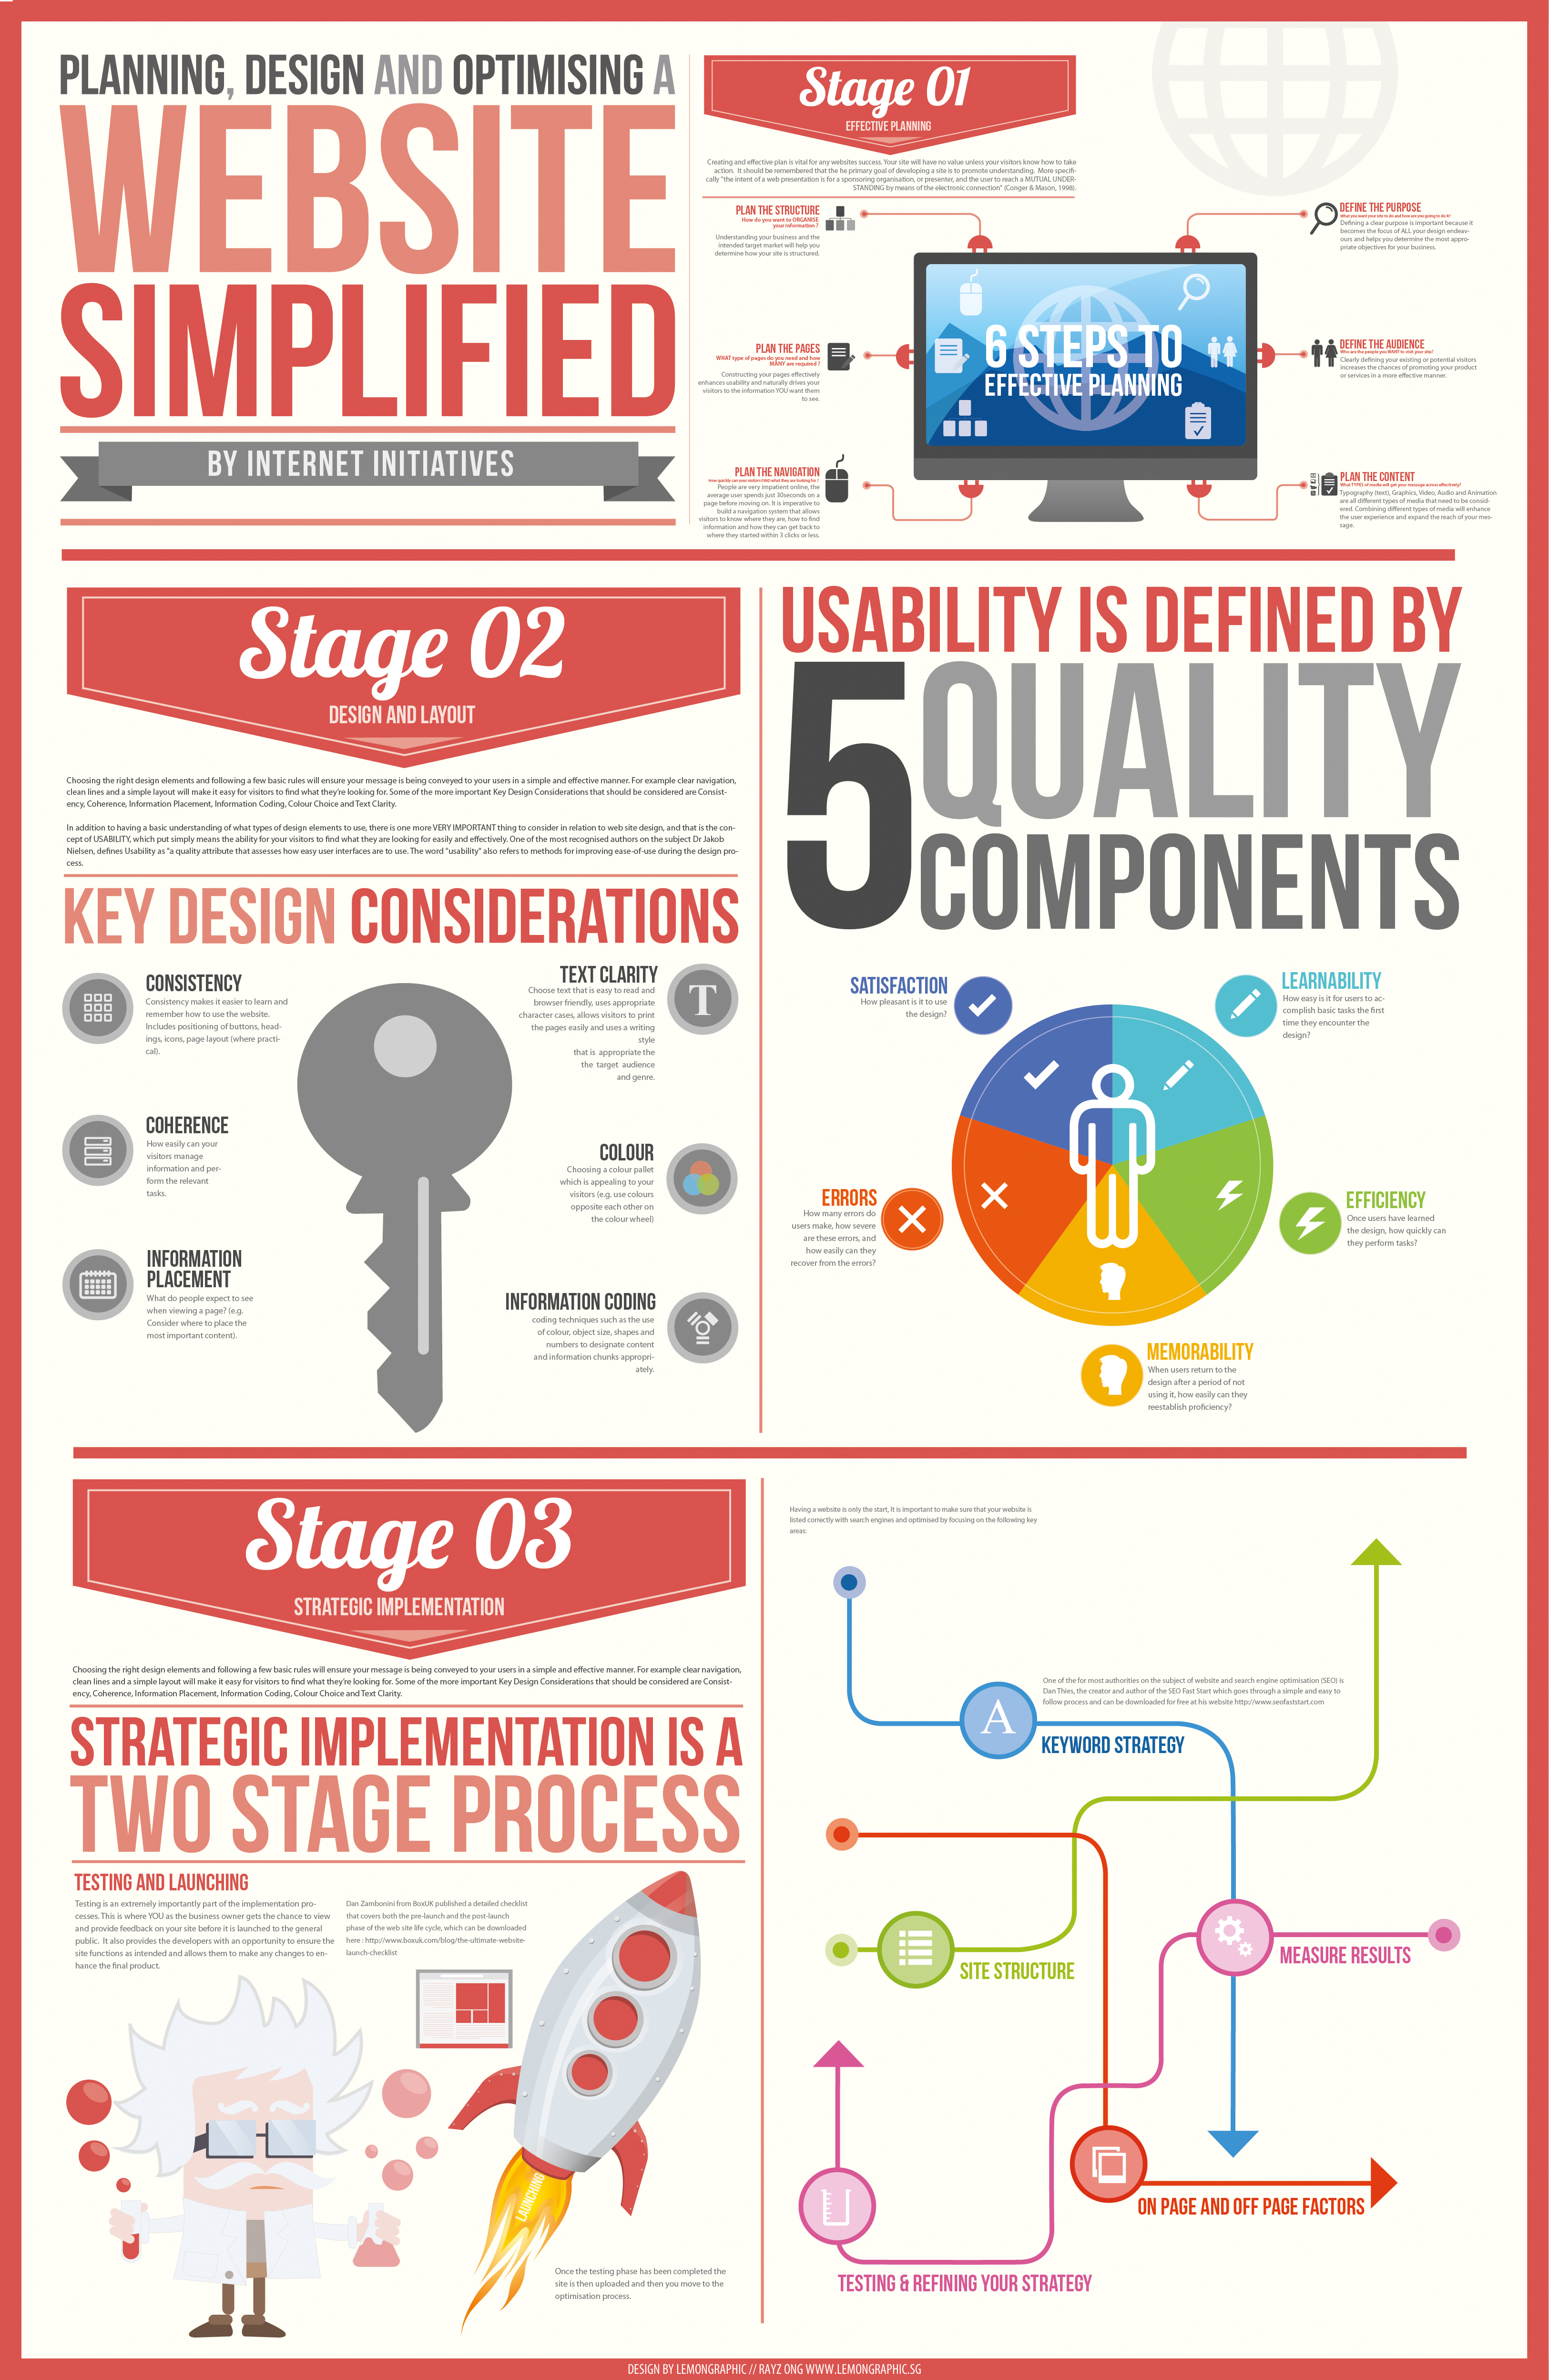 The Stages Of Planning And Designing A Website